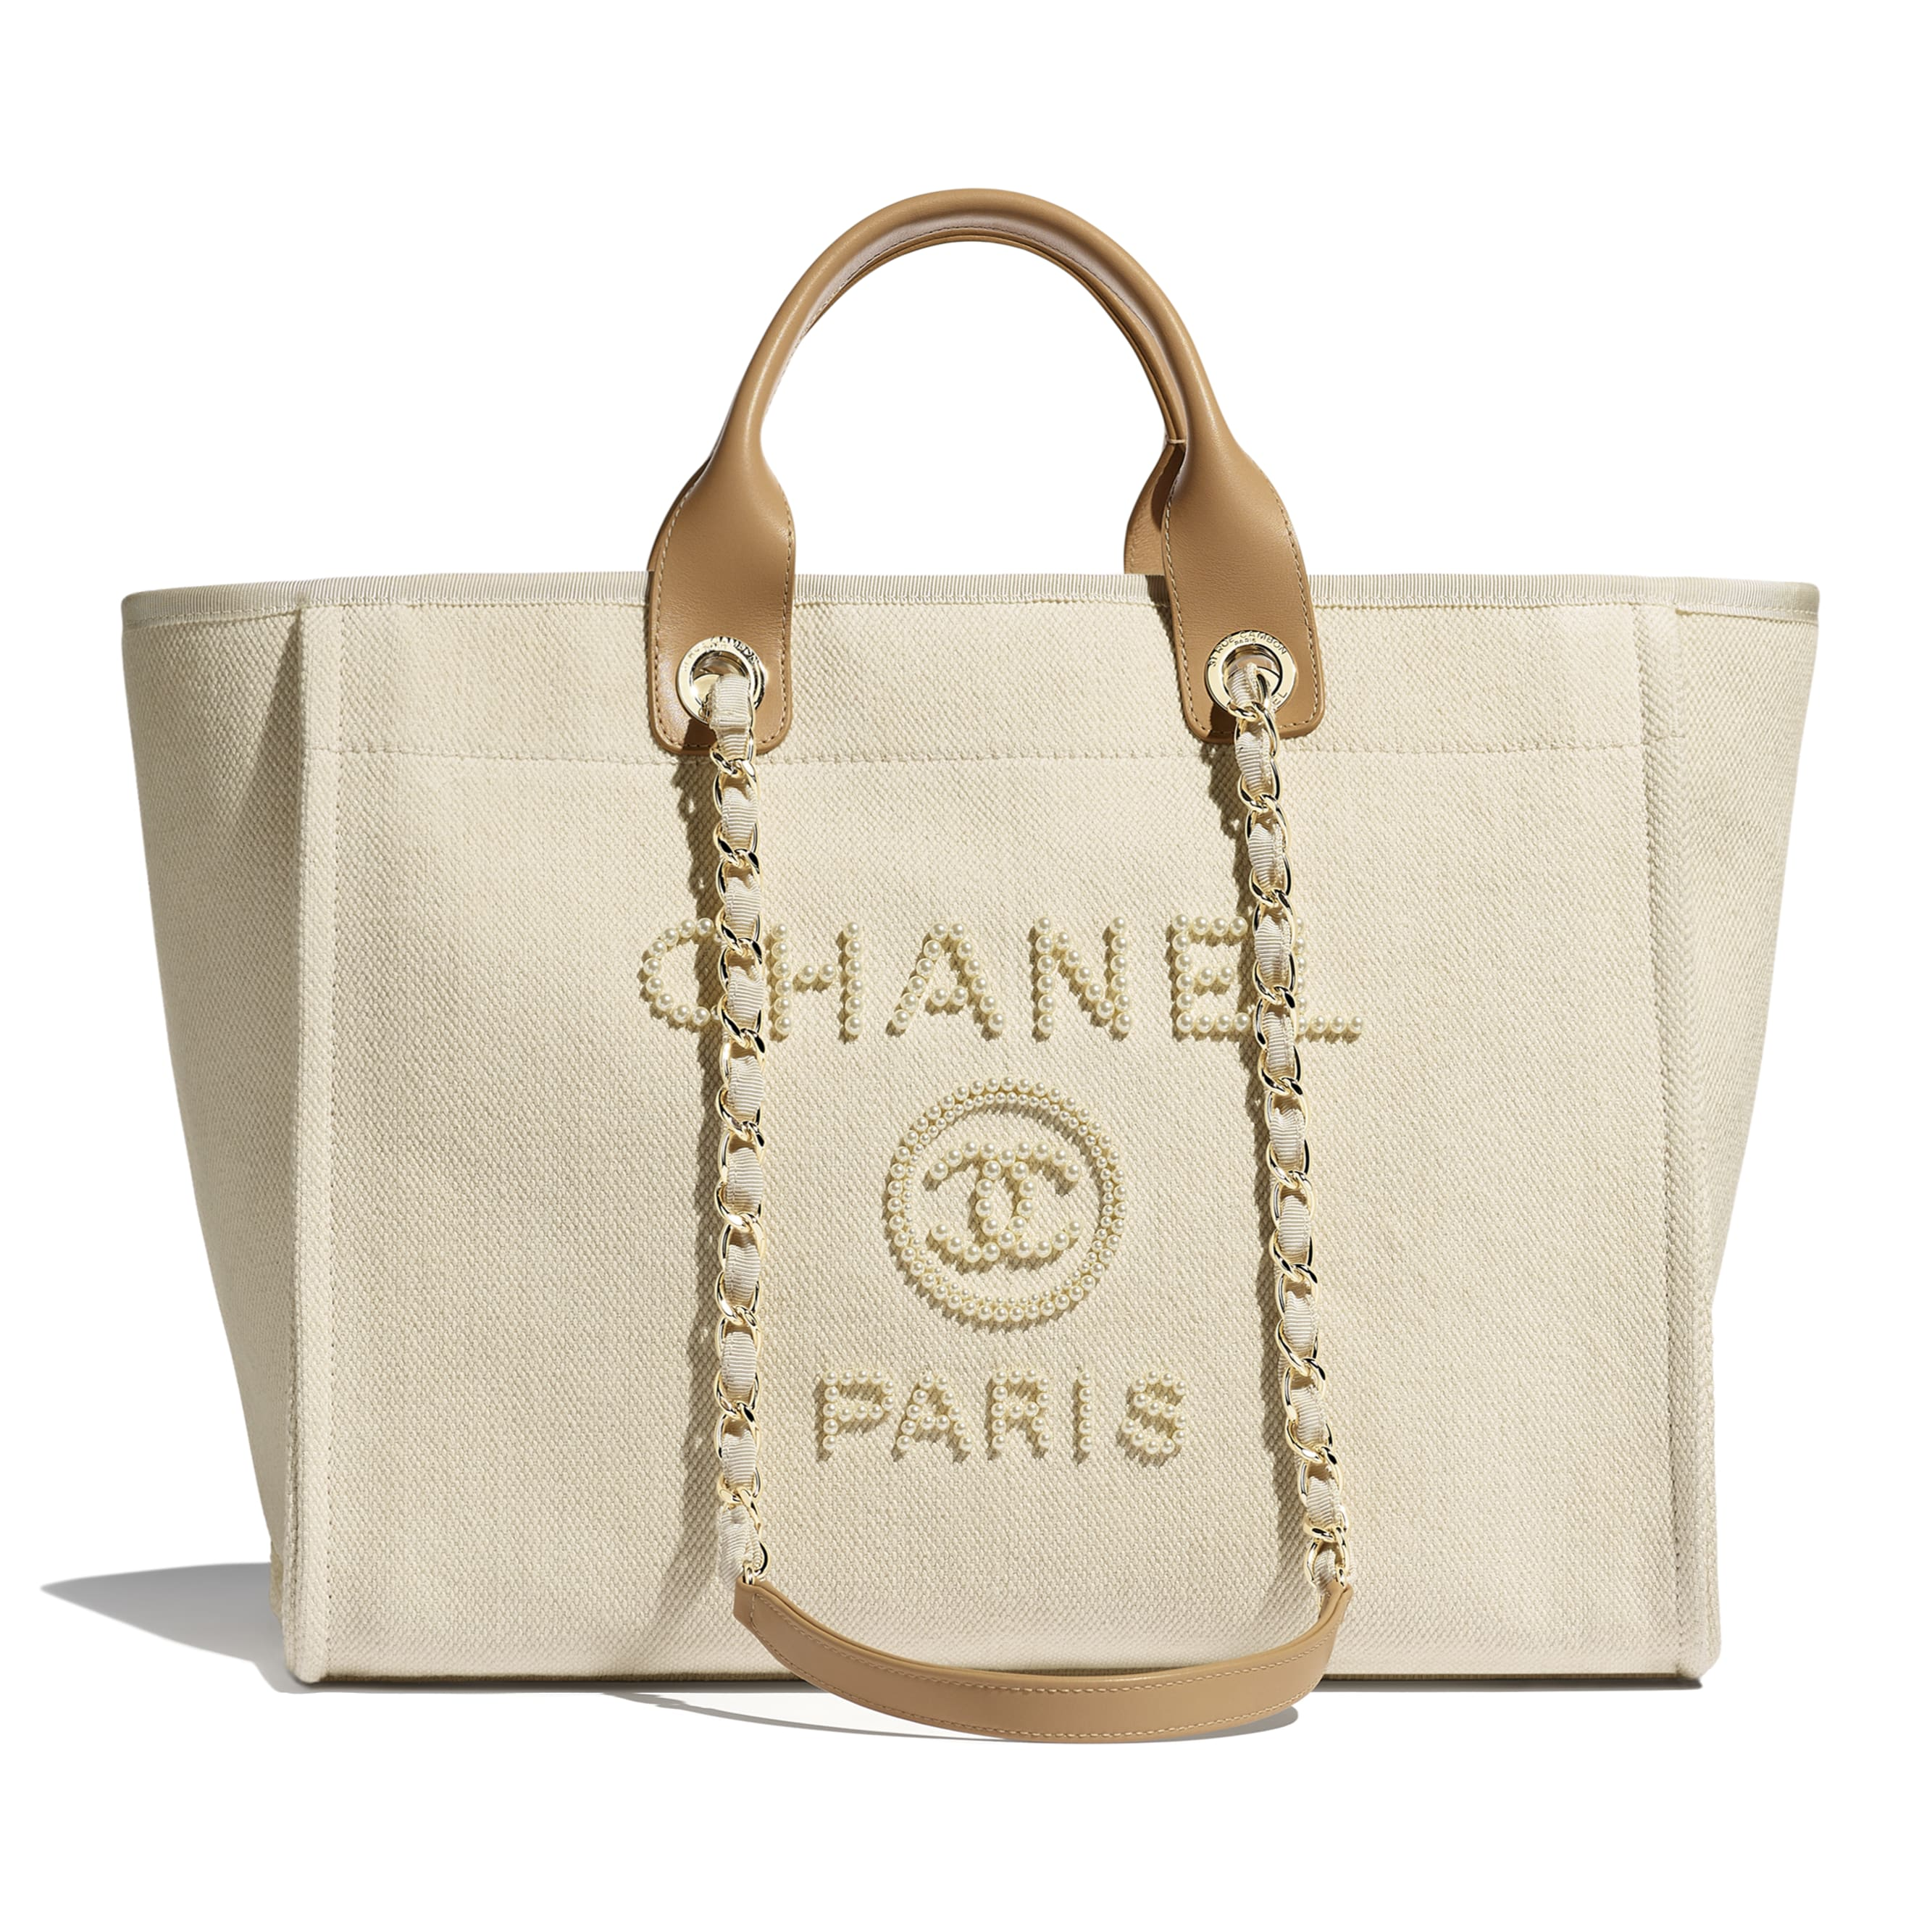 Shopping Bag - Ecru & Beige - Mixed Fibers, Imitation Pearls & Gold-Tone Metal - Default view - see standard sized version